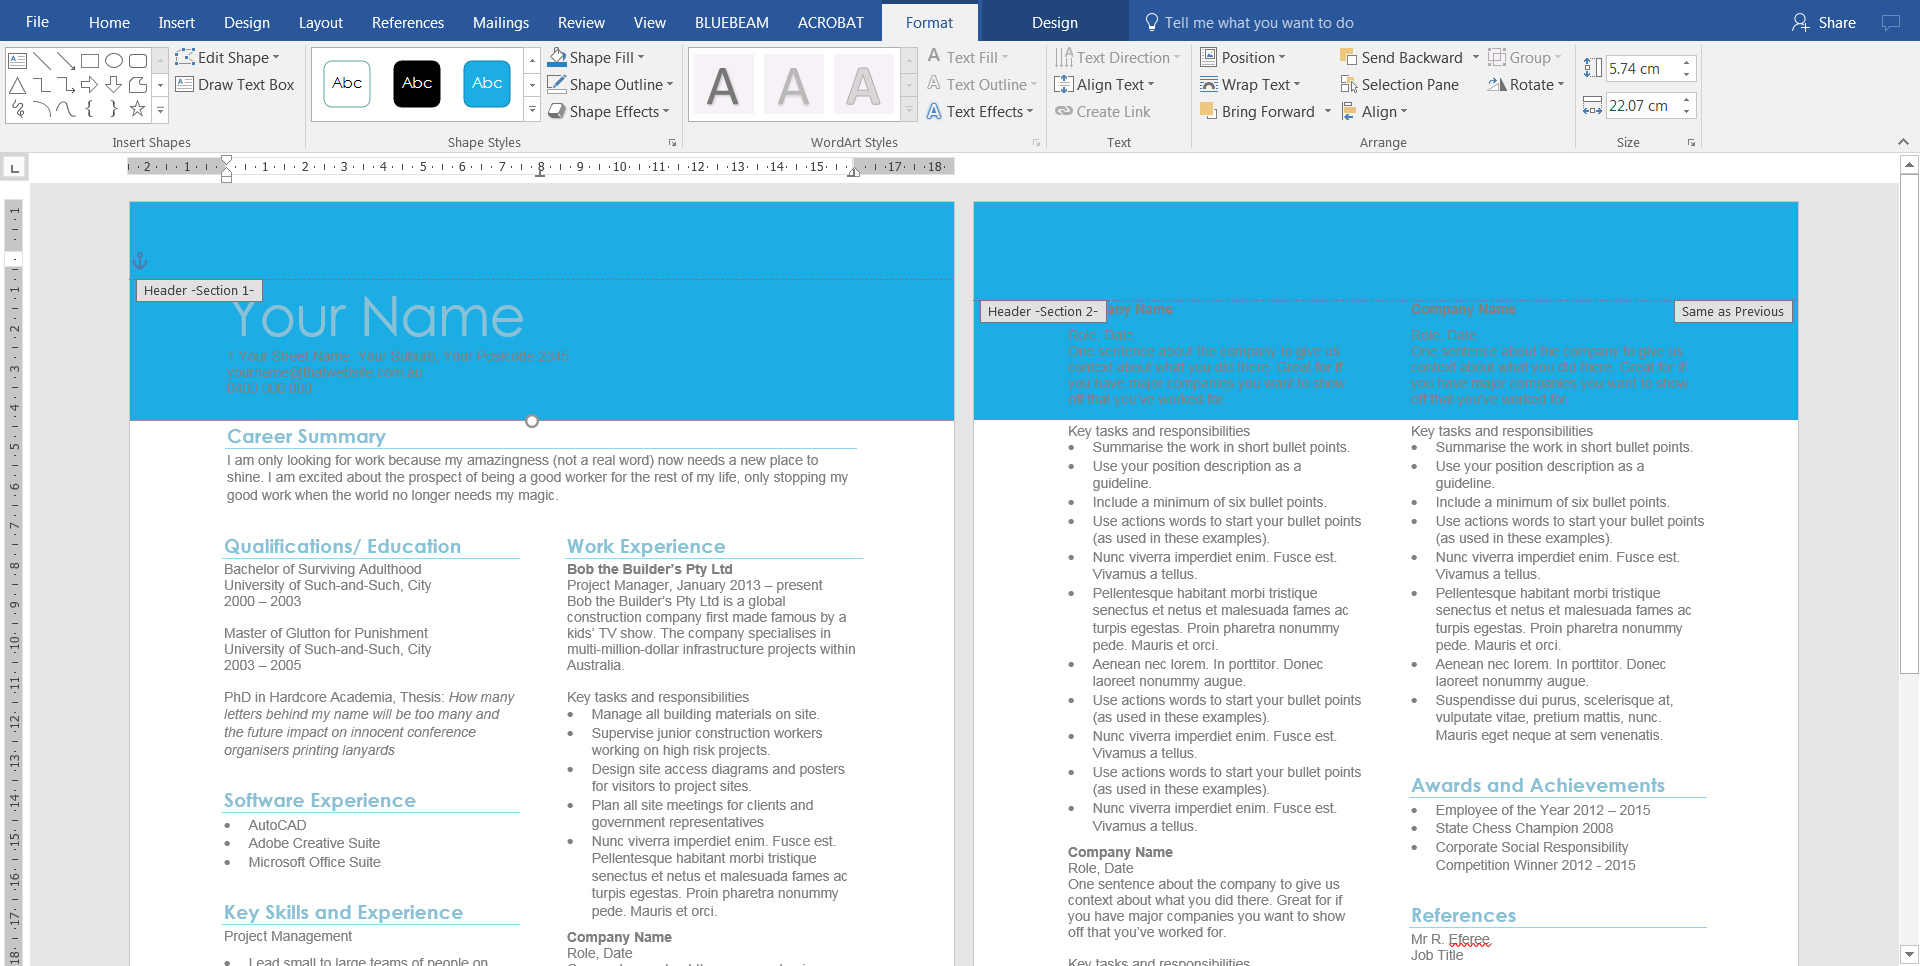 2. Add graphics to header in Word document